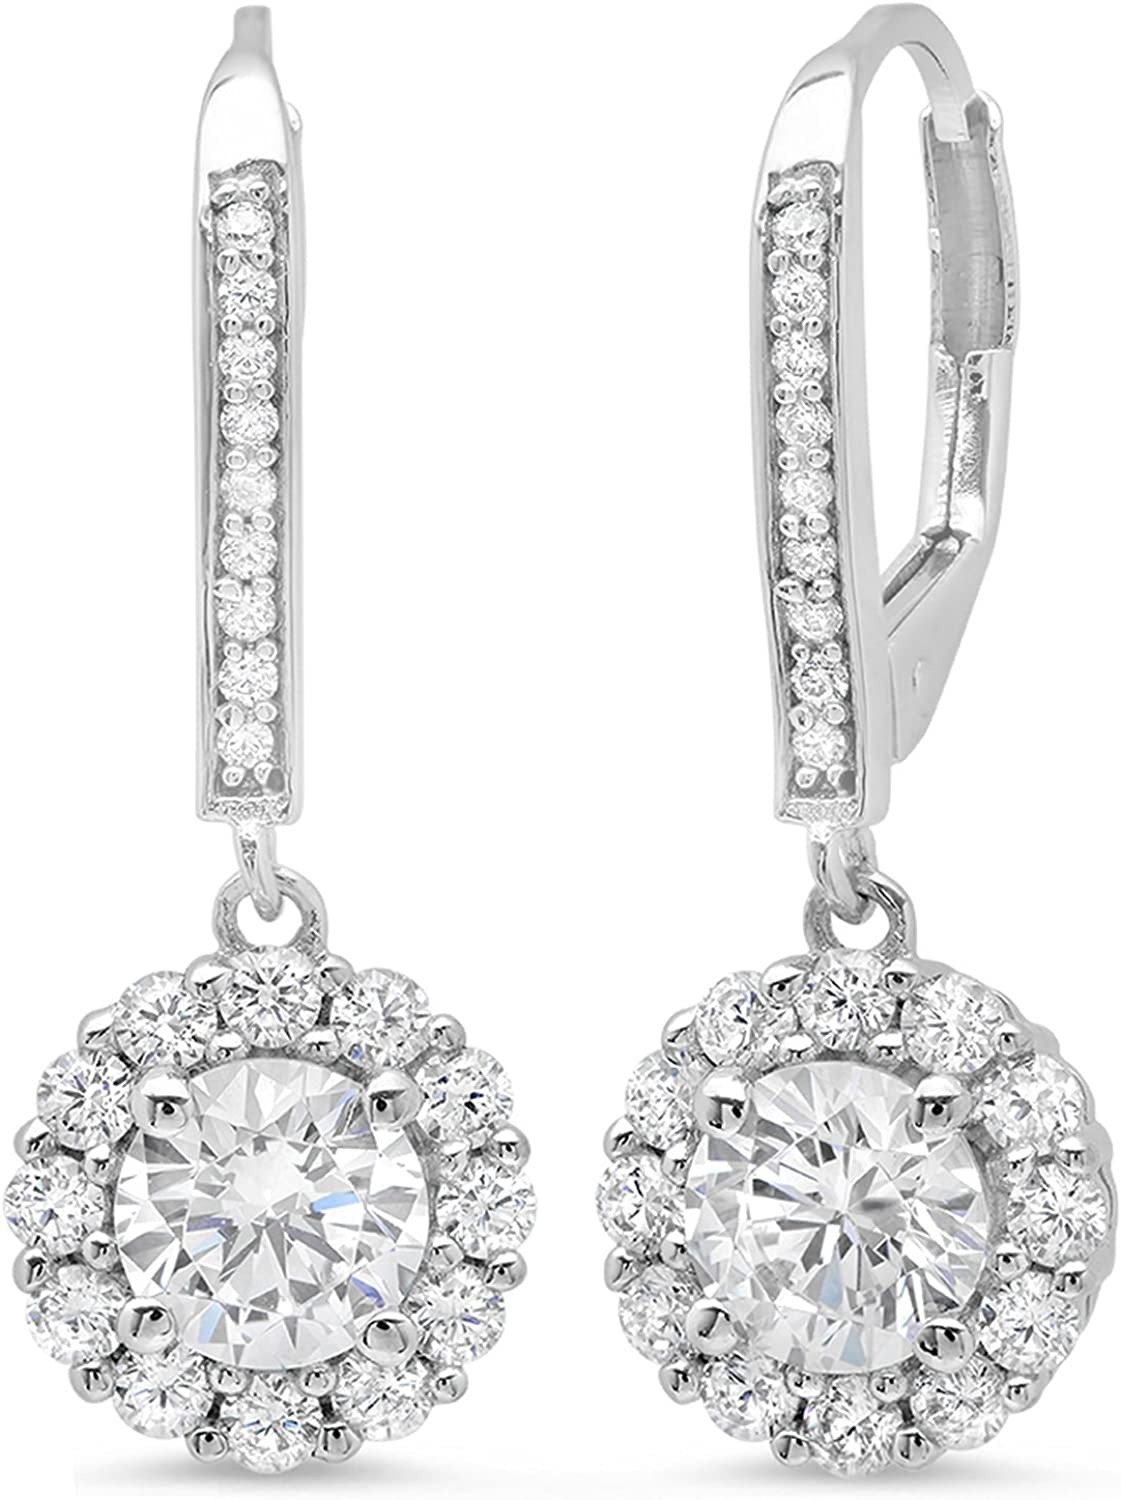 3.55 ct Brilliant Round Cut Halo Solitaire Highest Quality Moissanite & Simulated Diamond Anniversary gift Leverback Drop Dangle Earrings Real Solid 14k White Gold